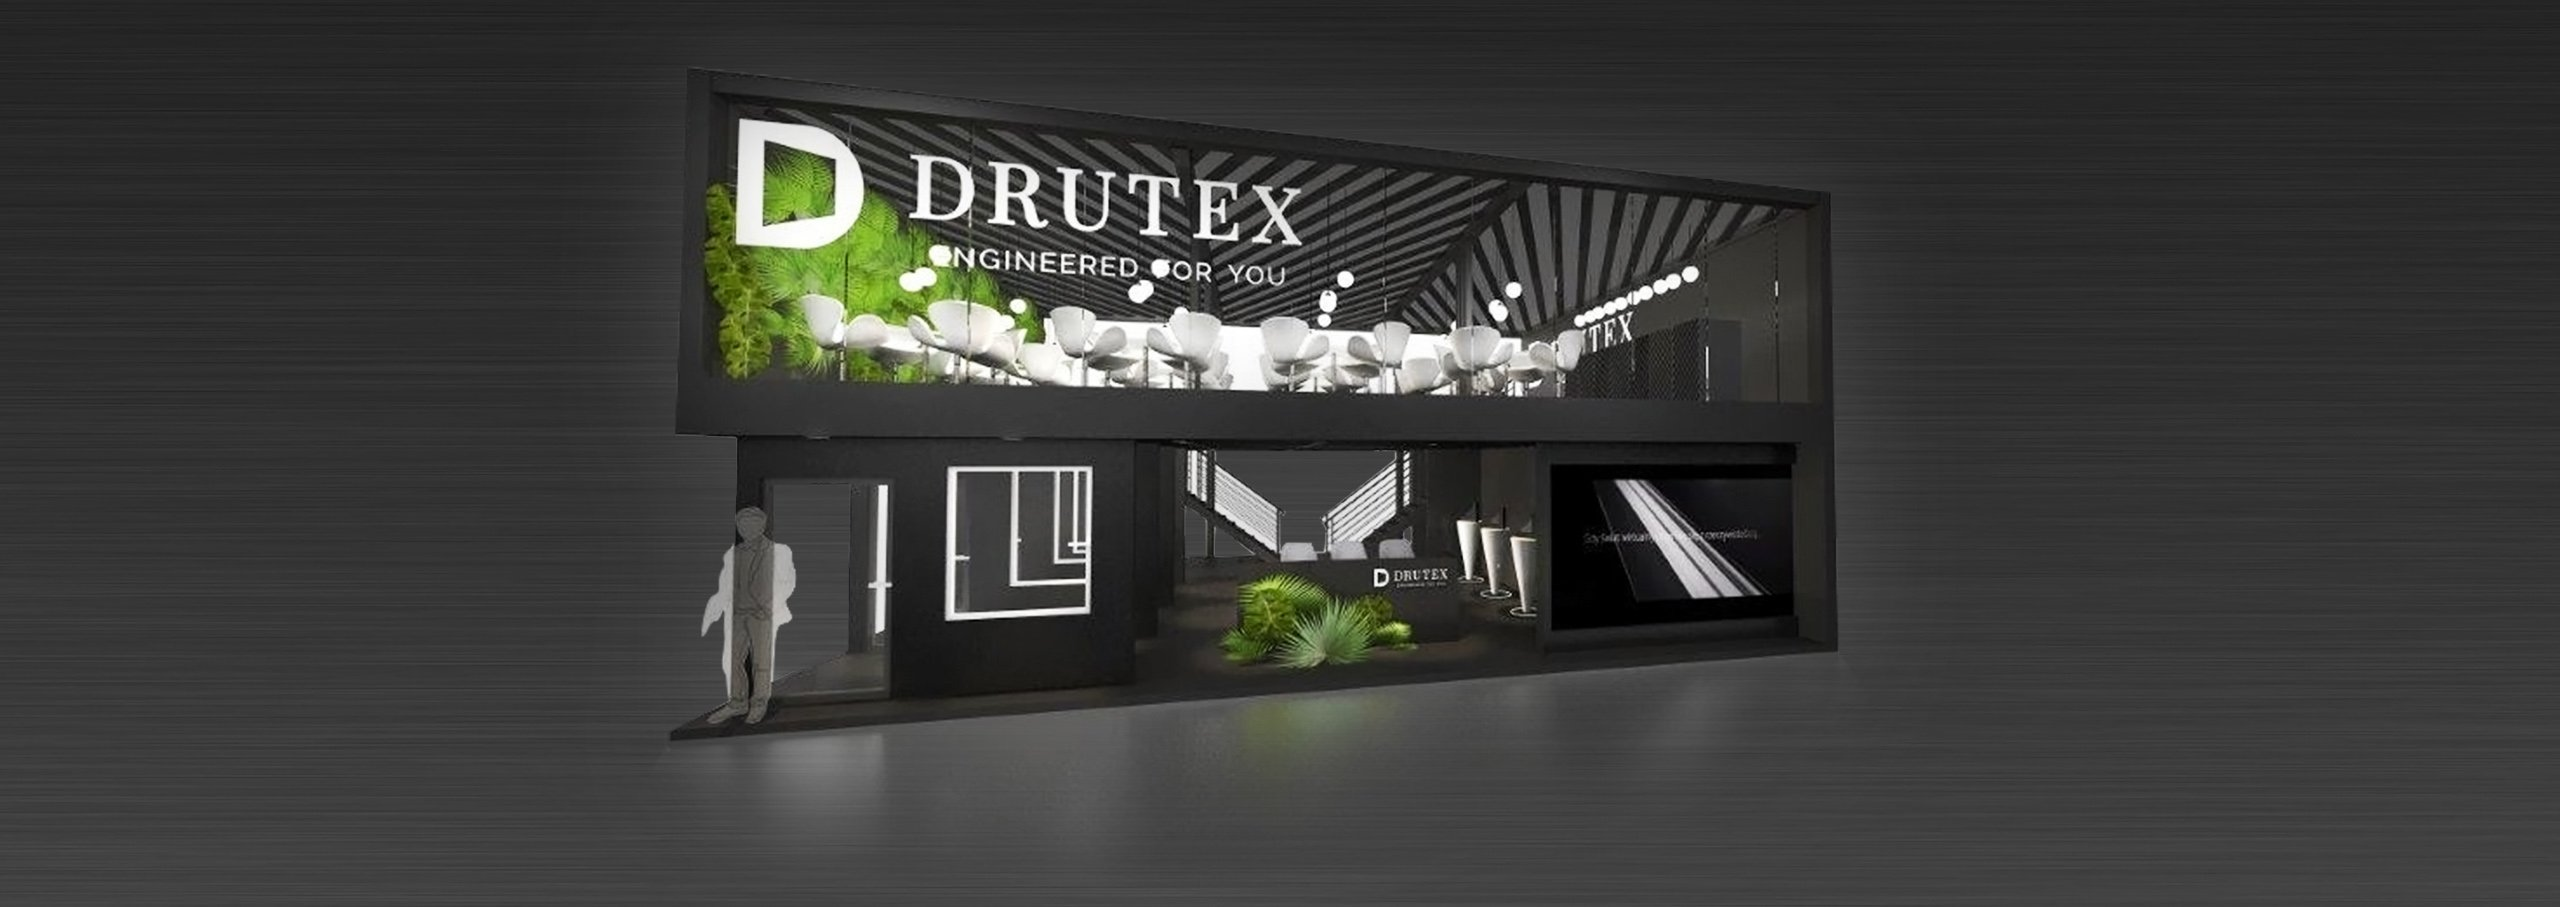 Drutex at the 2018  Fensterbau Frontale trade fair in Germany!